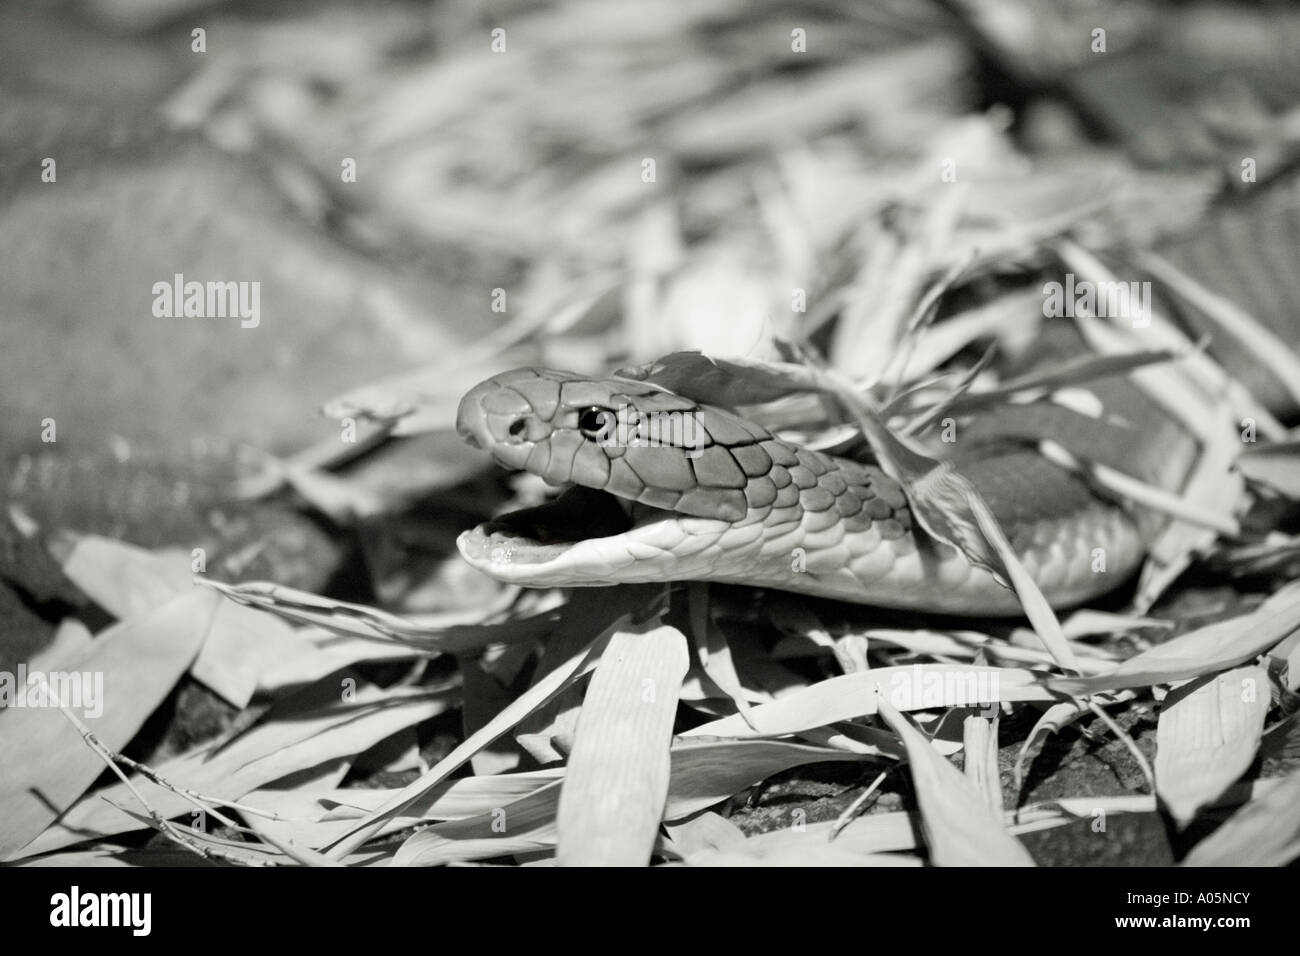 taipan snake in leaf litter - Stock Image